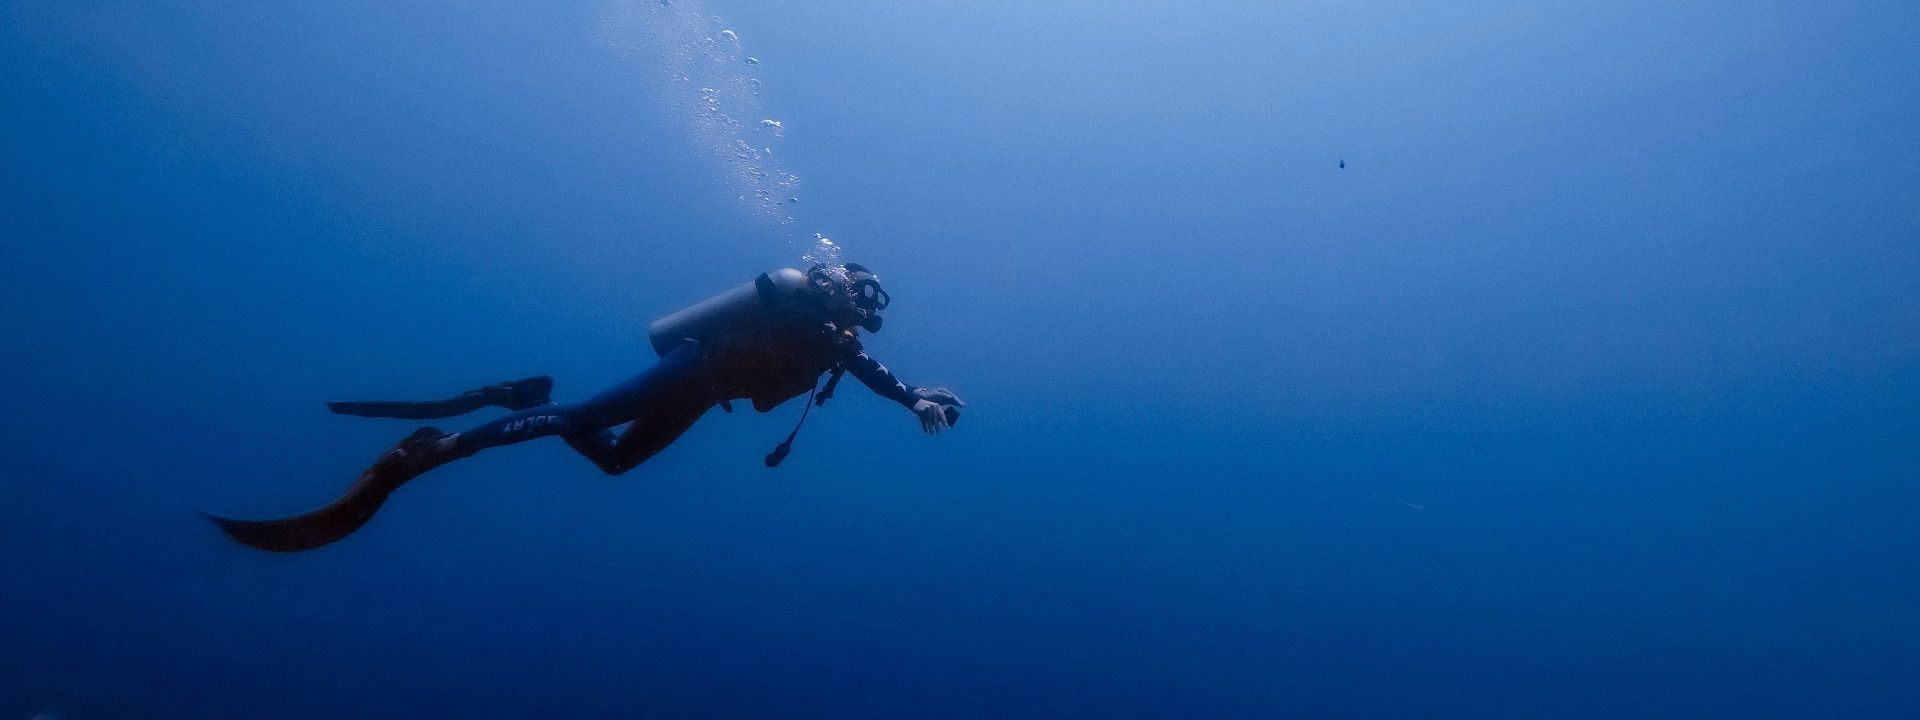 Scuba Diver under water in Bali